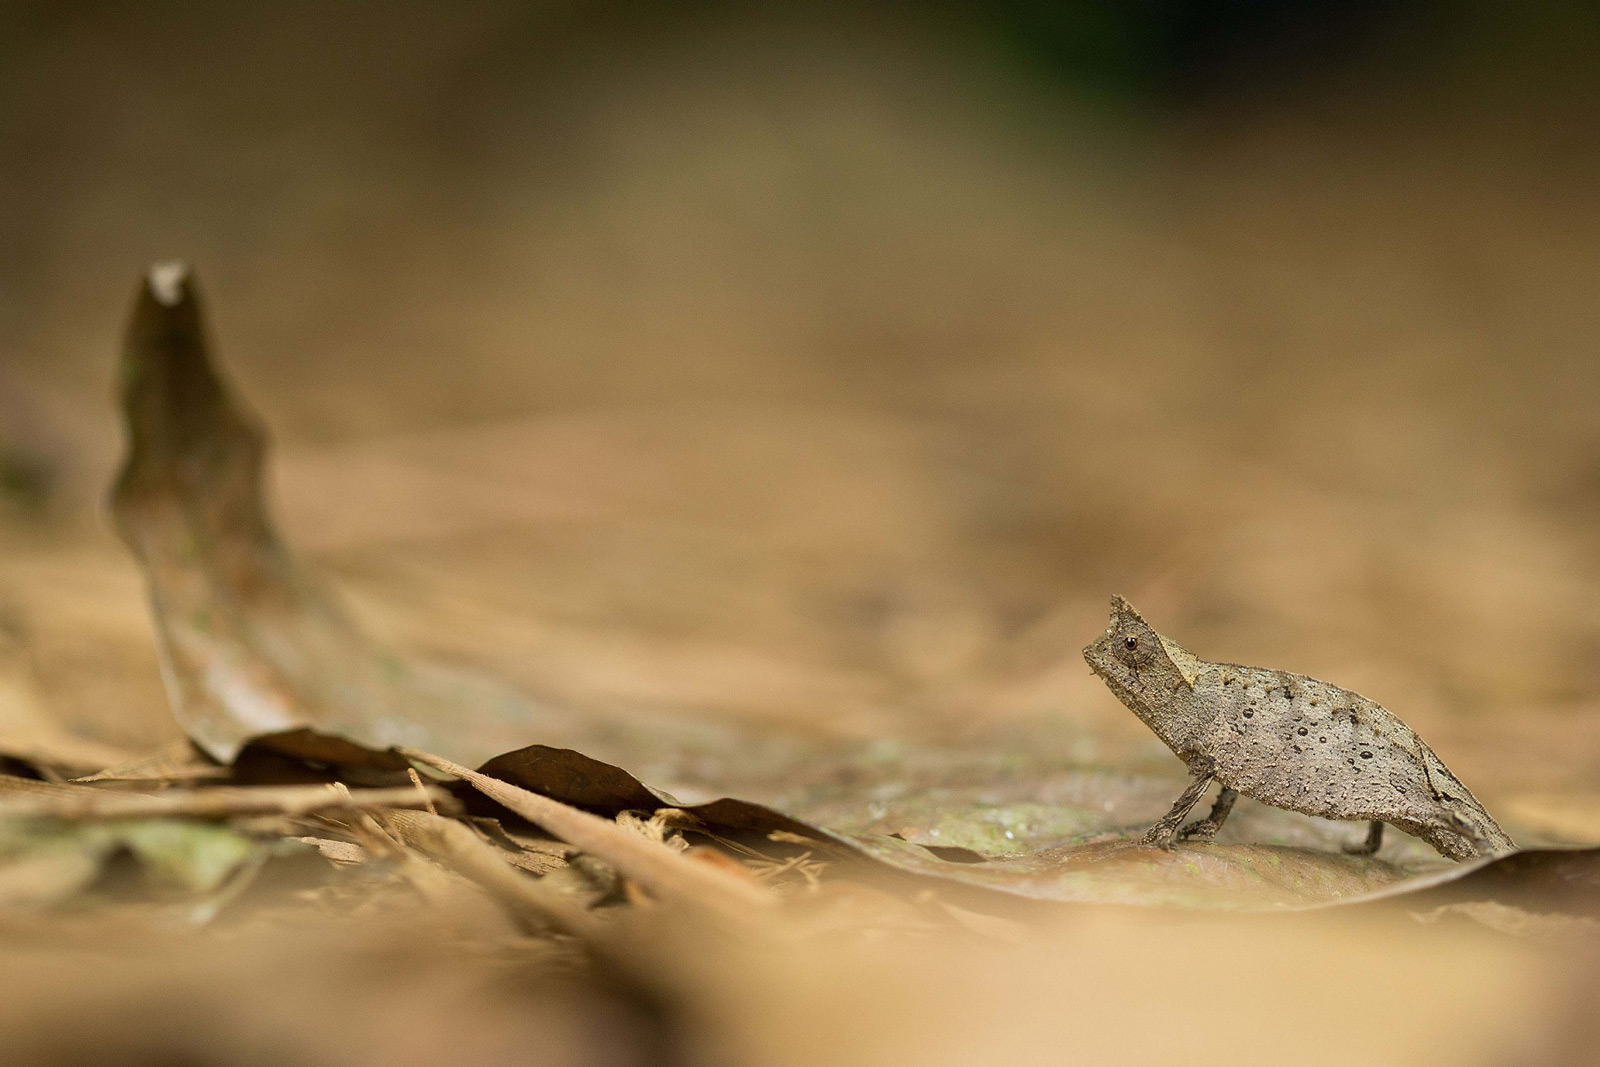 A brown leaf chameleon takes a break while crossing a path in Ranomafana National Park, Madagascar ©Alastair Marsh